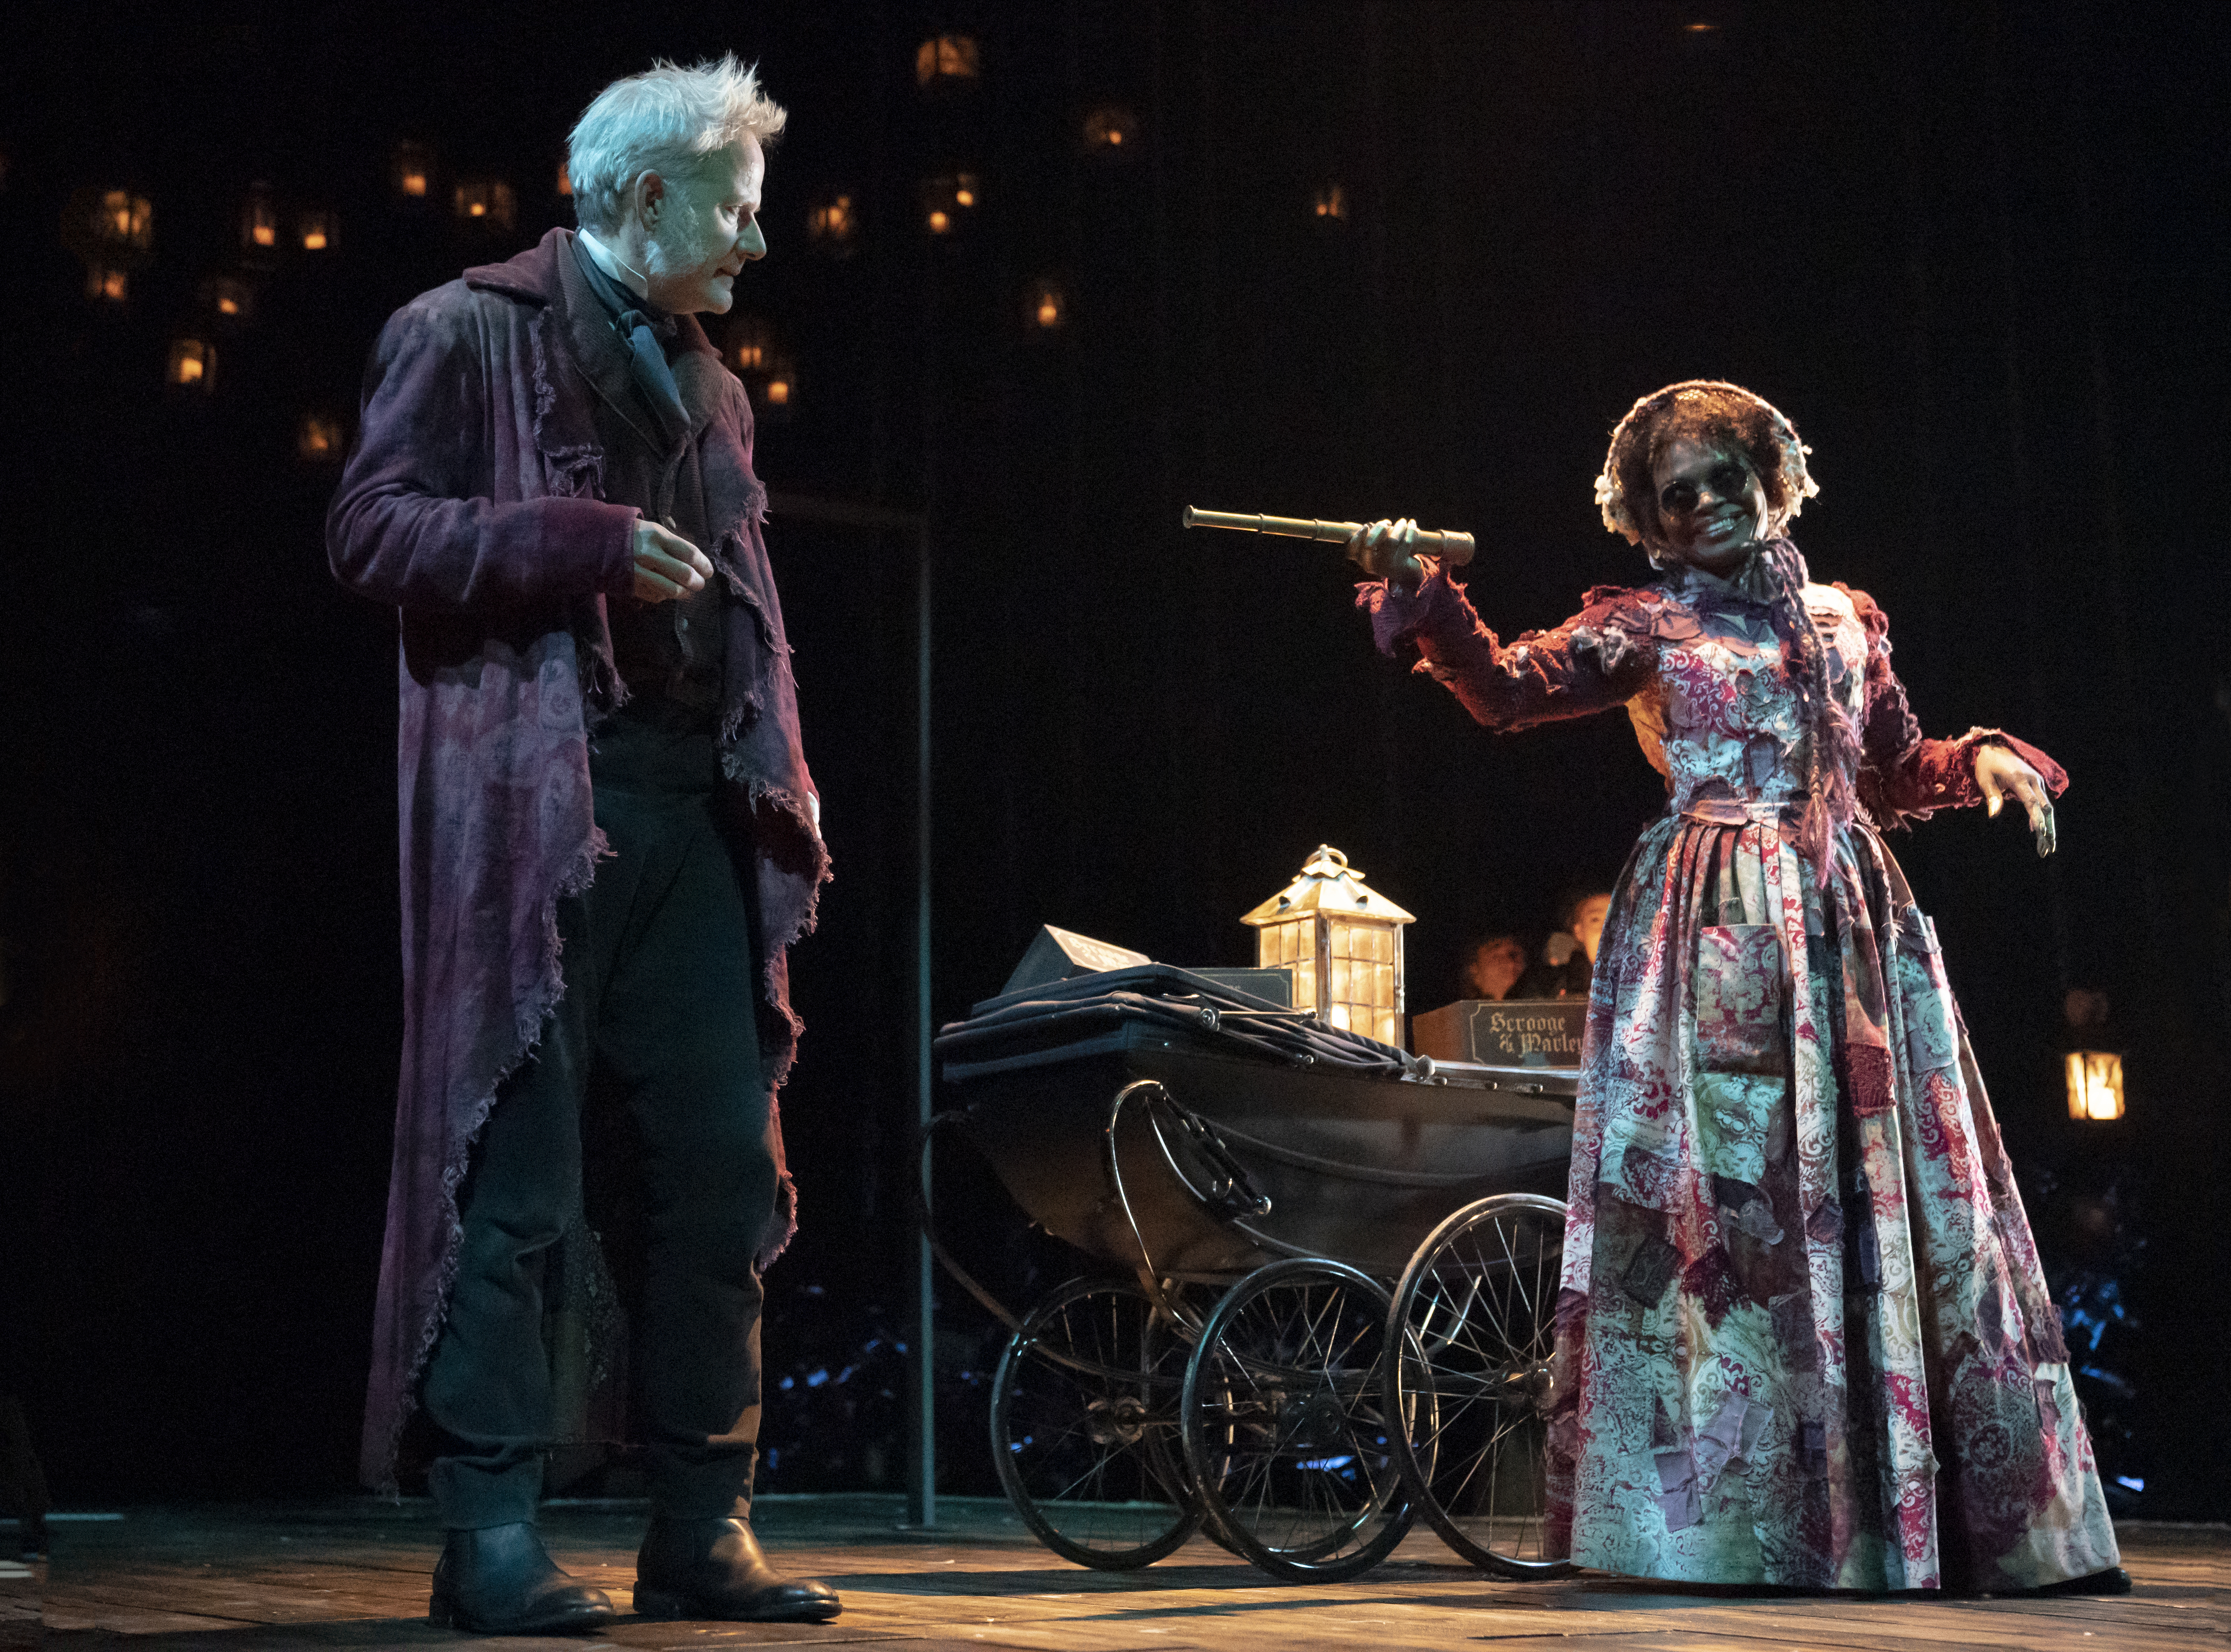 A Christmas Carol Play 2020 A Christmas Carol Aims to Return to Broadway in 2021 | Playbill